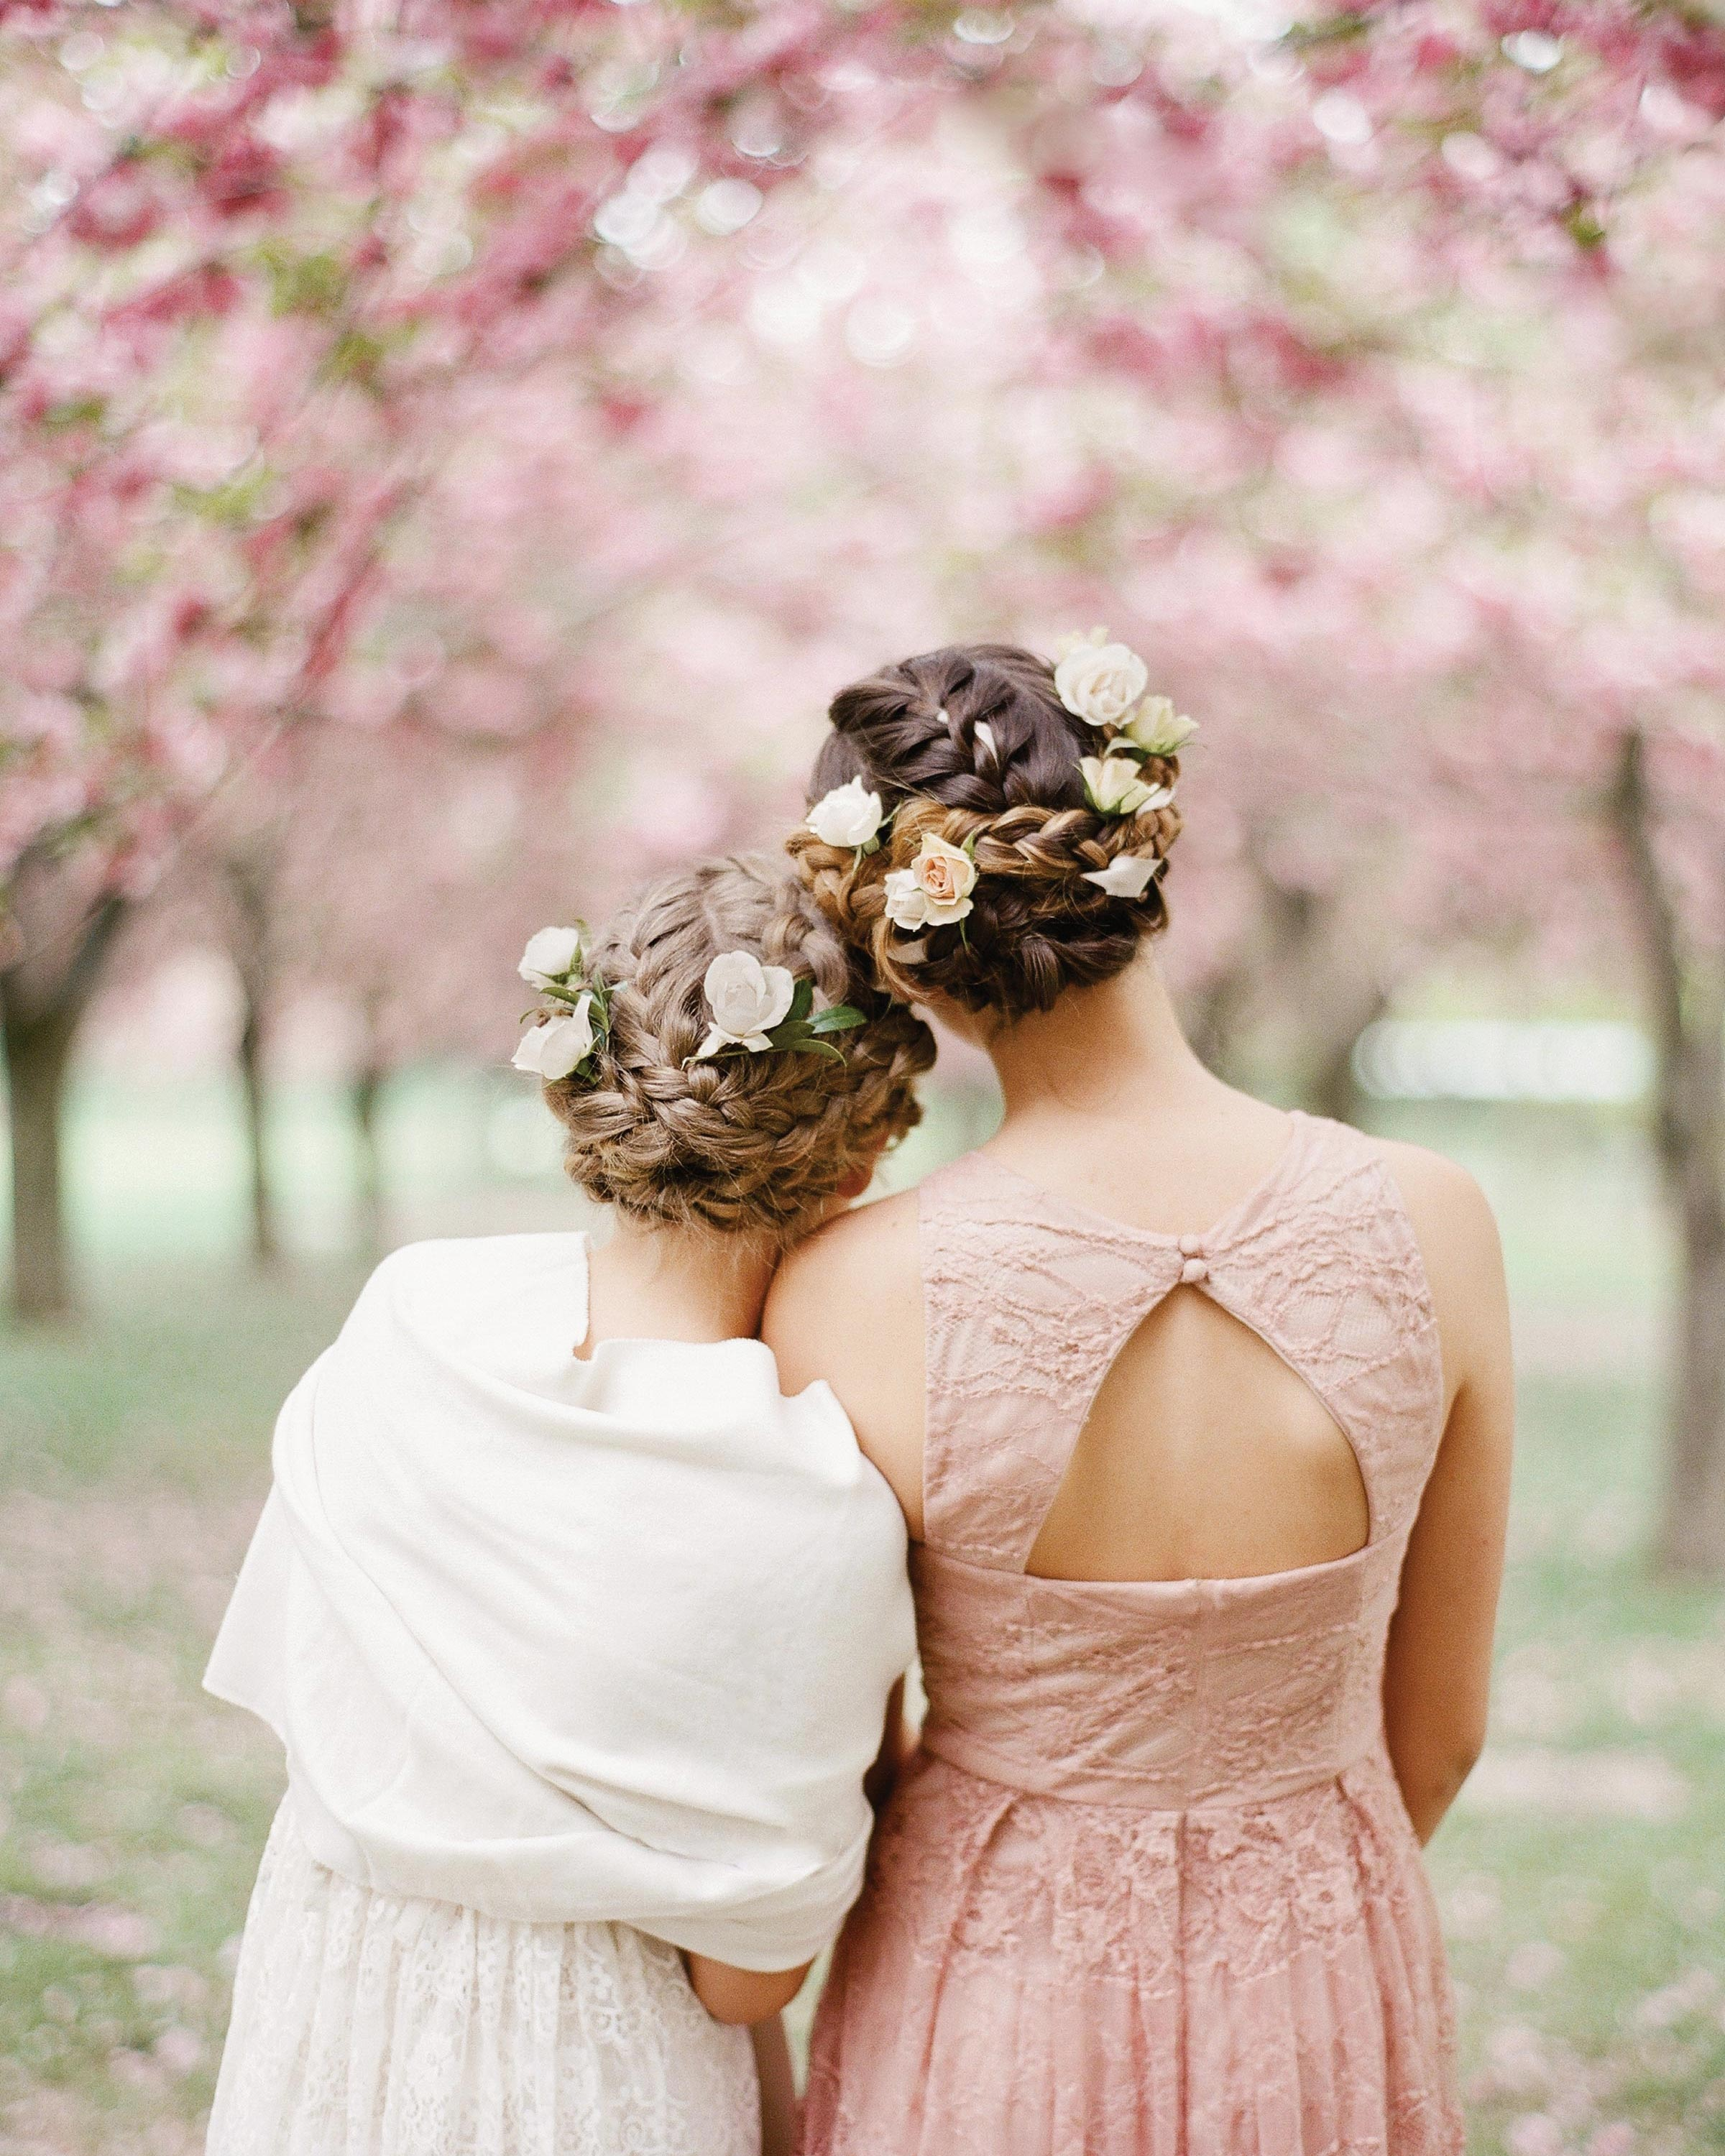 Should a Junior Bridesmaid Wear Makeup on the Wedding Day?